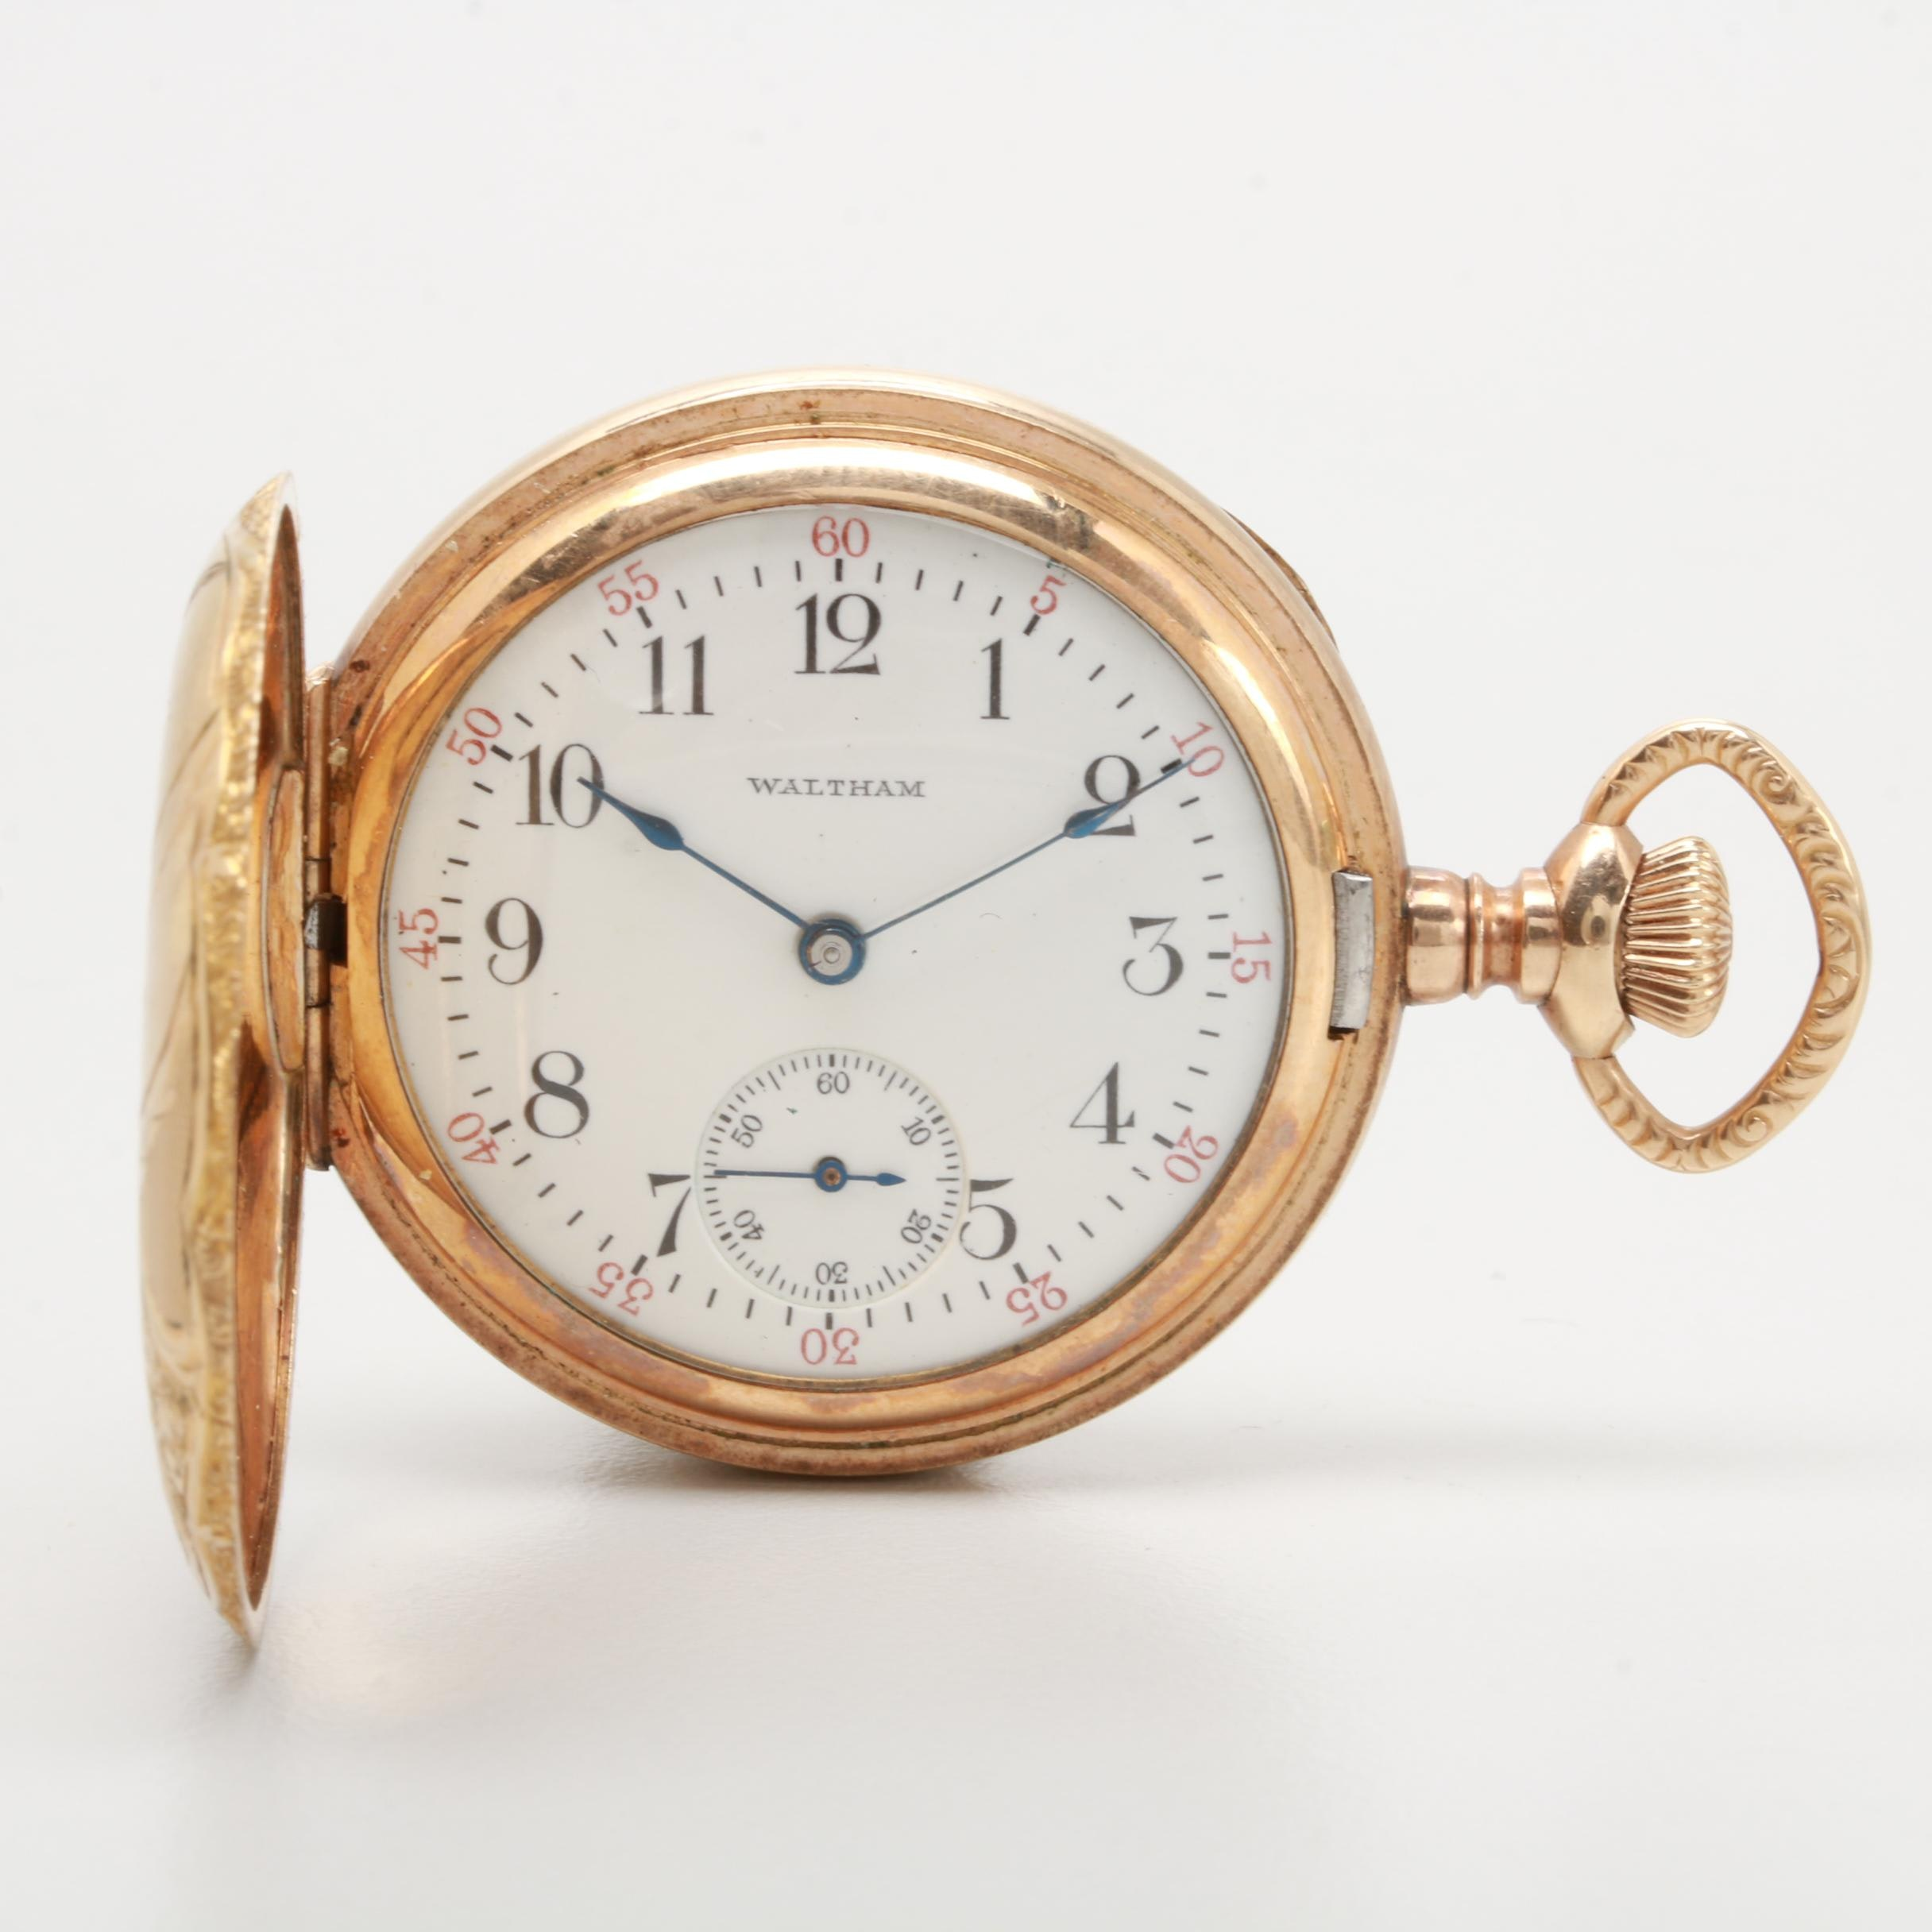 Circa 1909 Waltham Gold Filled Hunting Case Pocket Watch